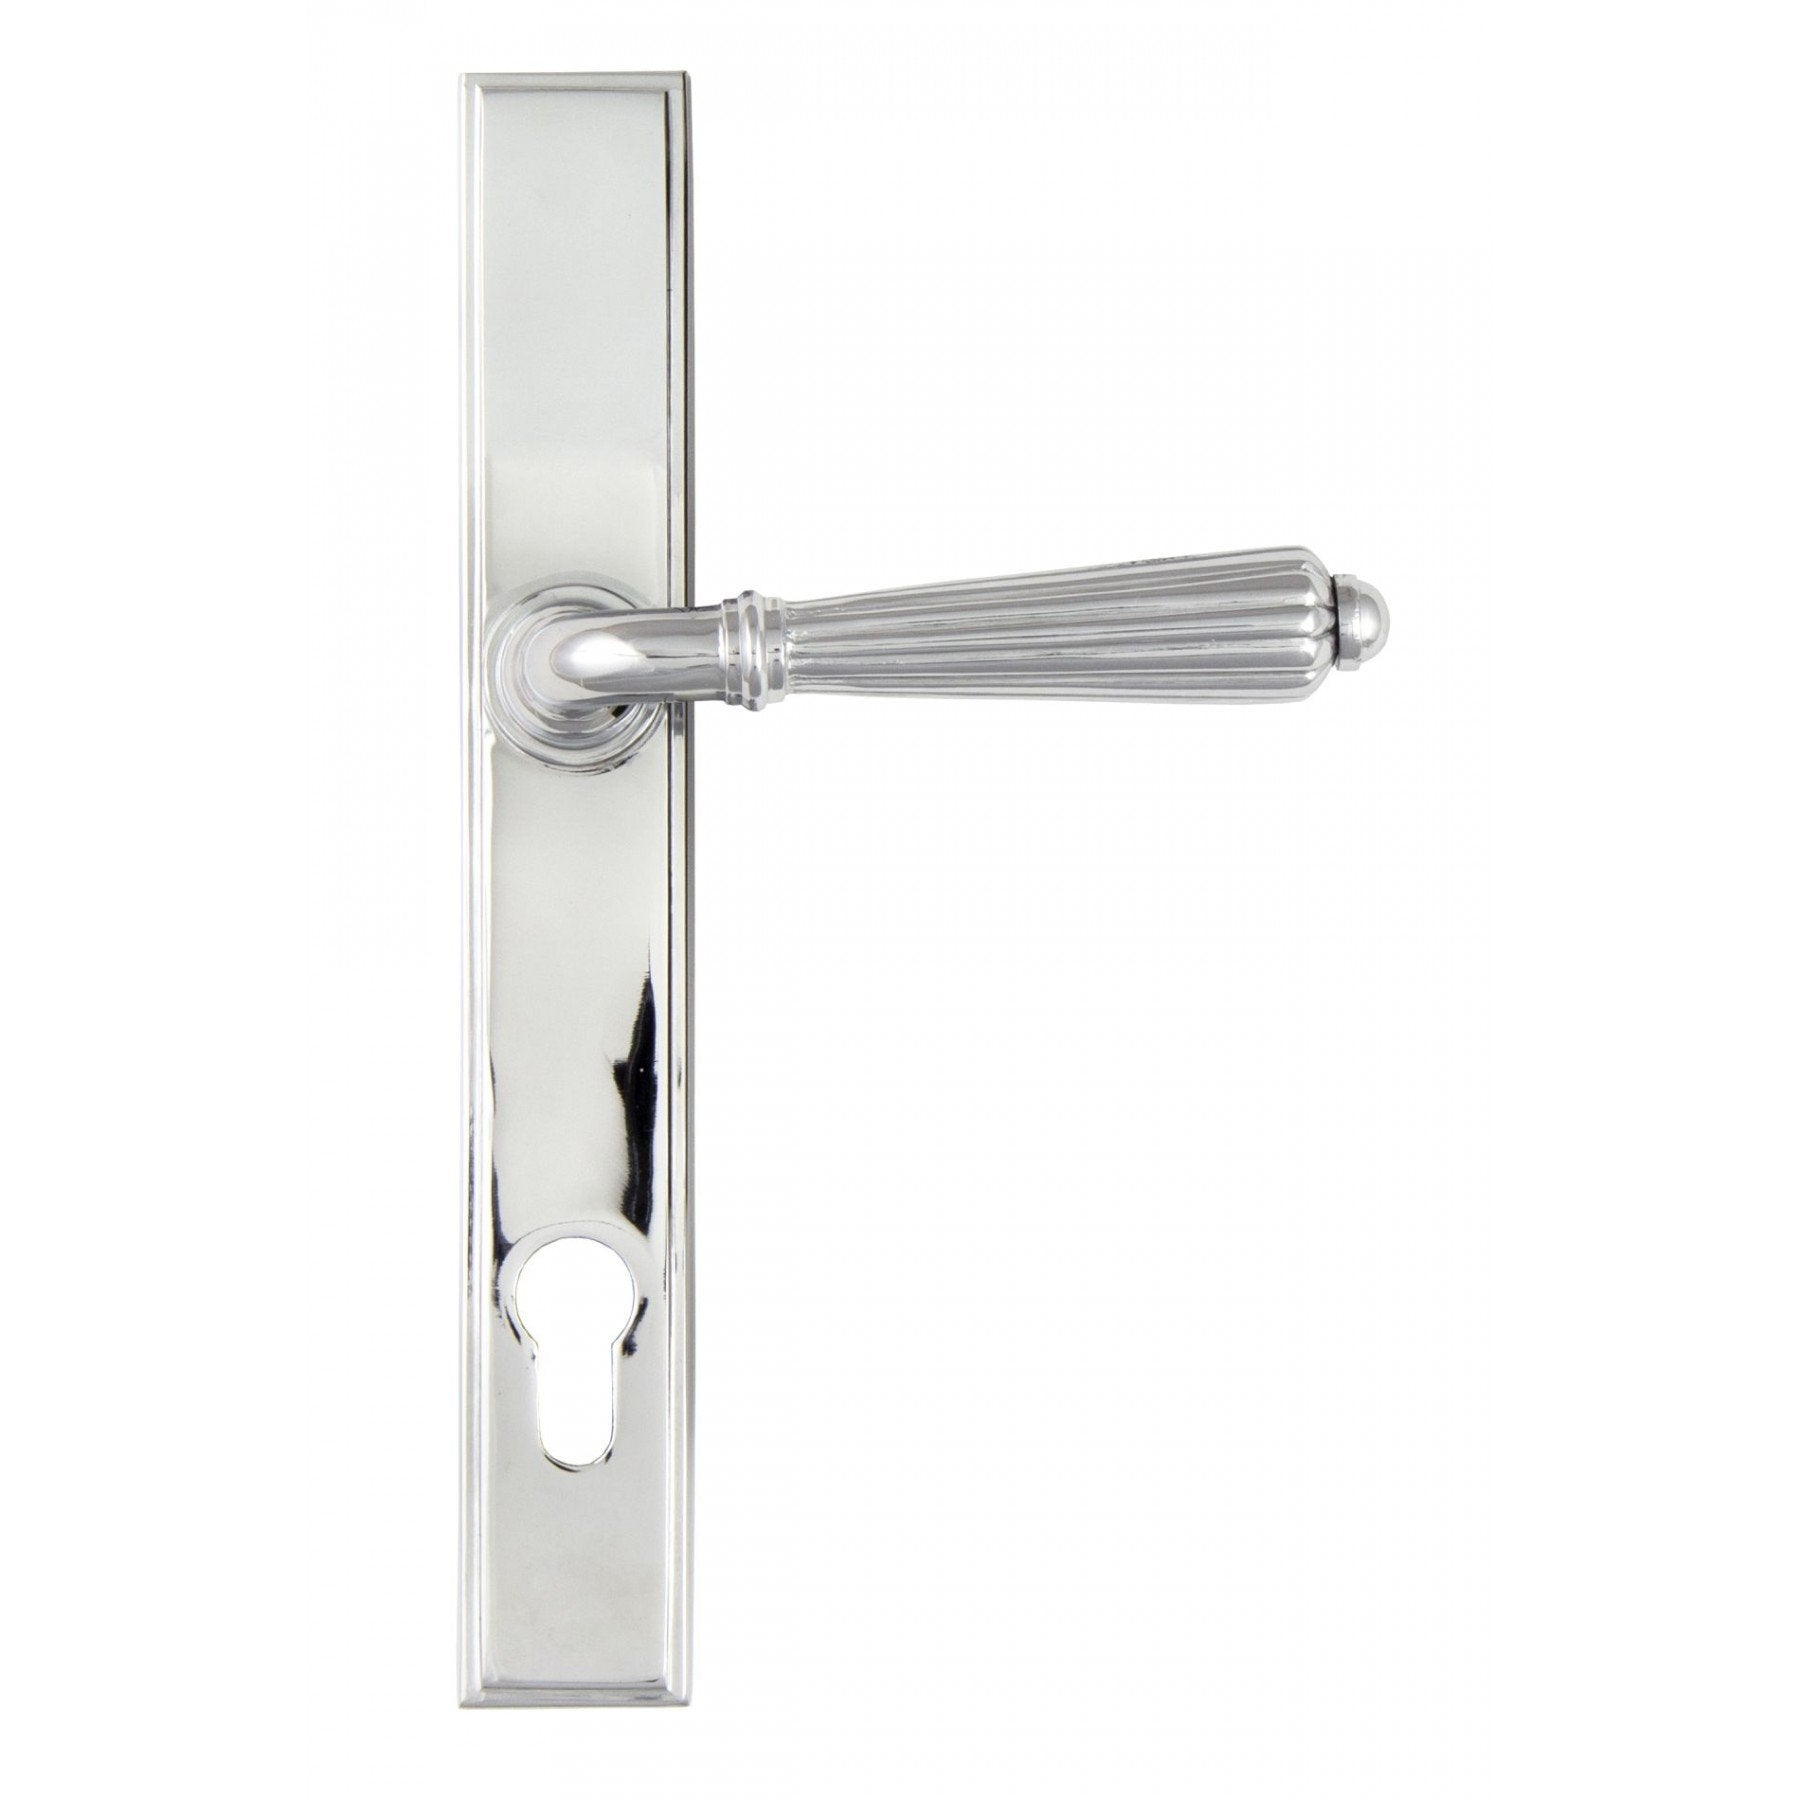 From the Anvil Polished Chrome Hinton Slimline Lever Espag. Lock Set